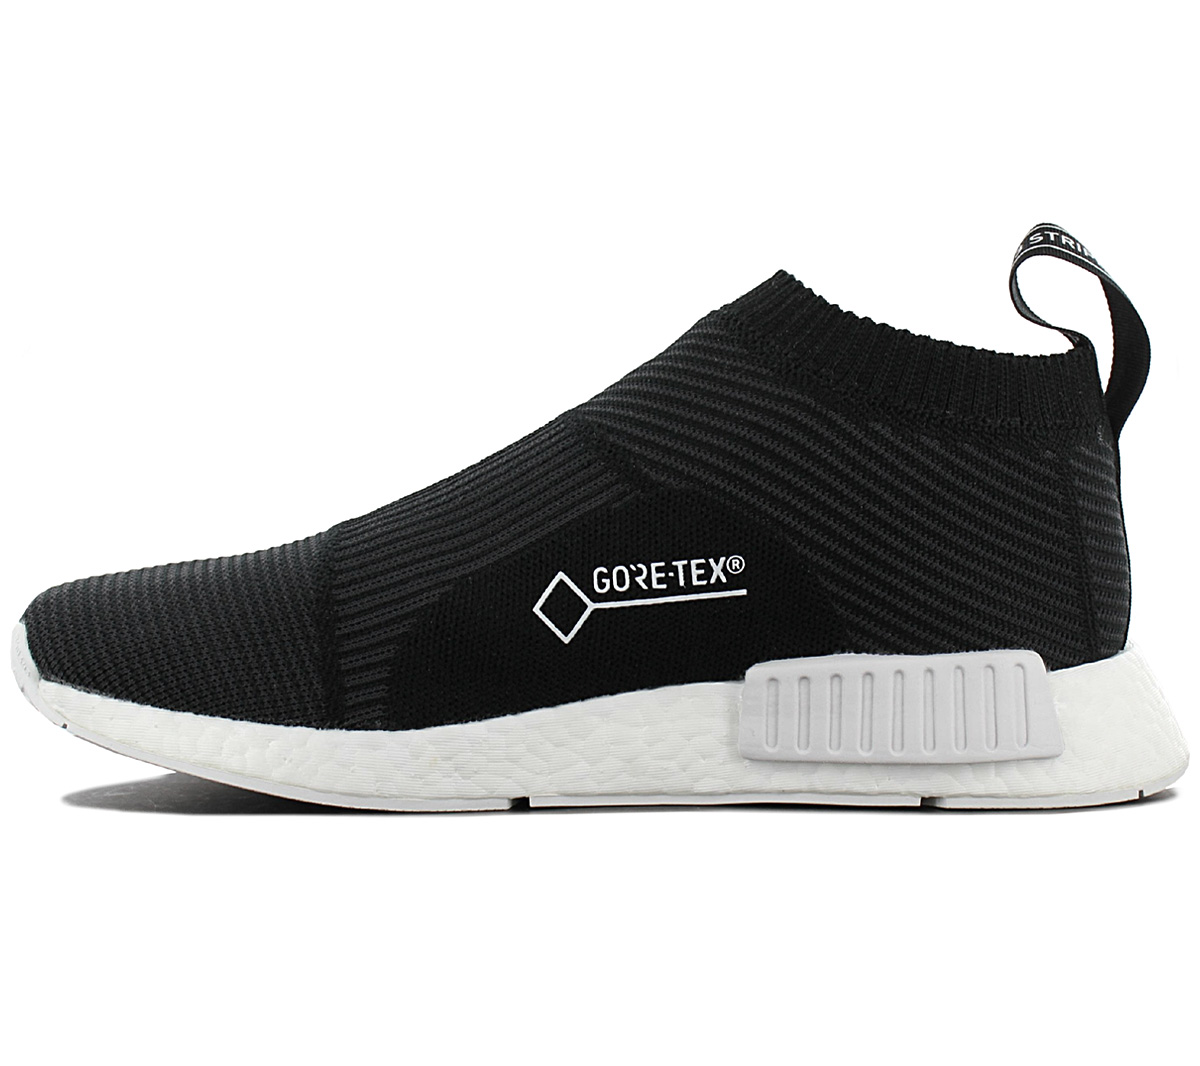 Details about NEW adidas NMD CS1 GTX PK Primeknit Gore Tex BY9405 Men´s Shoes Trainers Sneaker